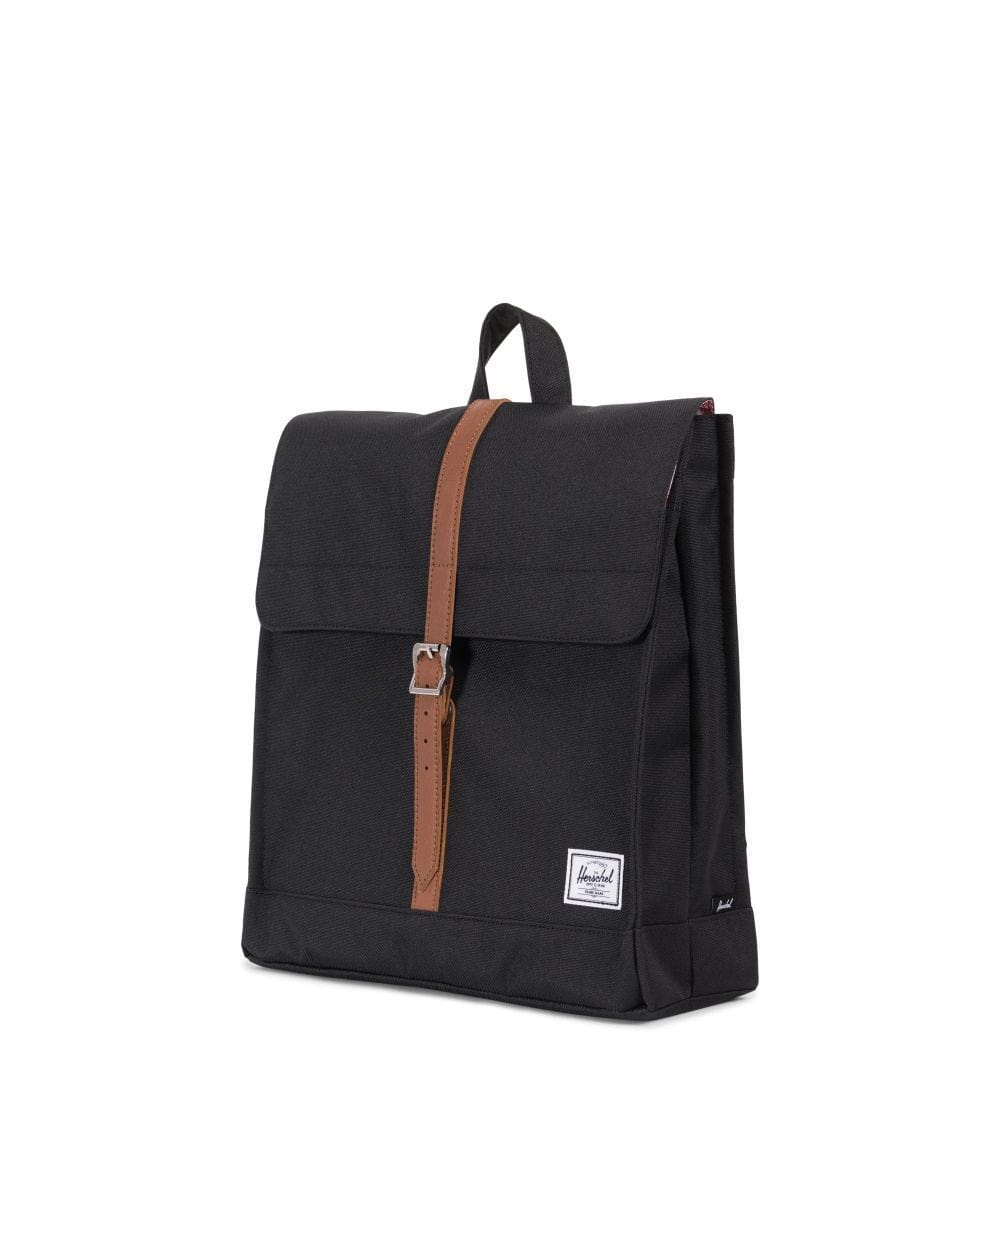 Herschel City Mid-Volume hátizsák - Black/Tan Synthetic bőr